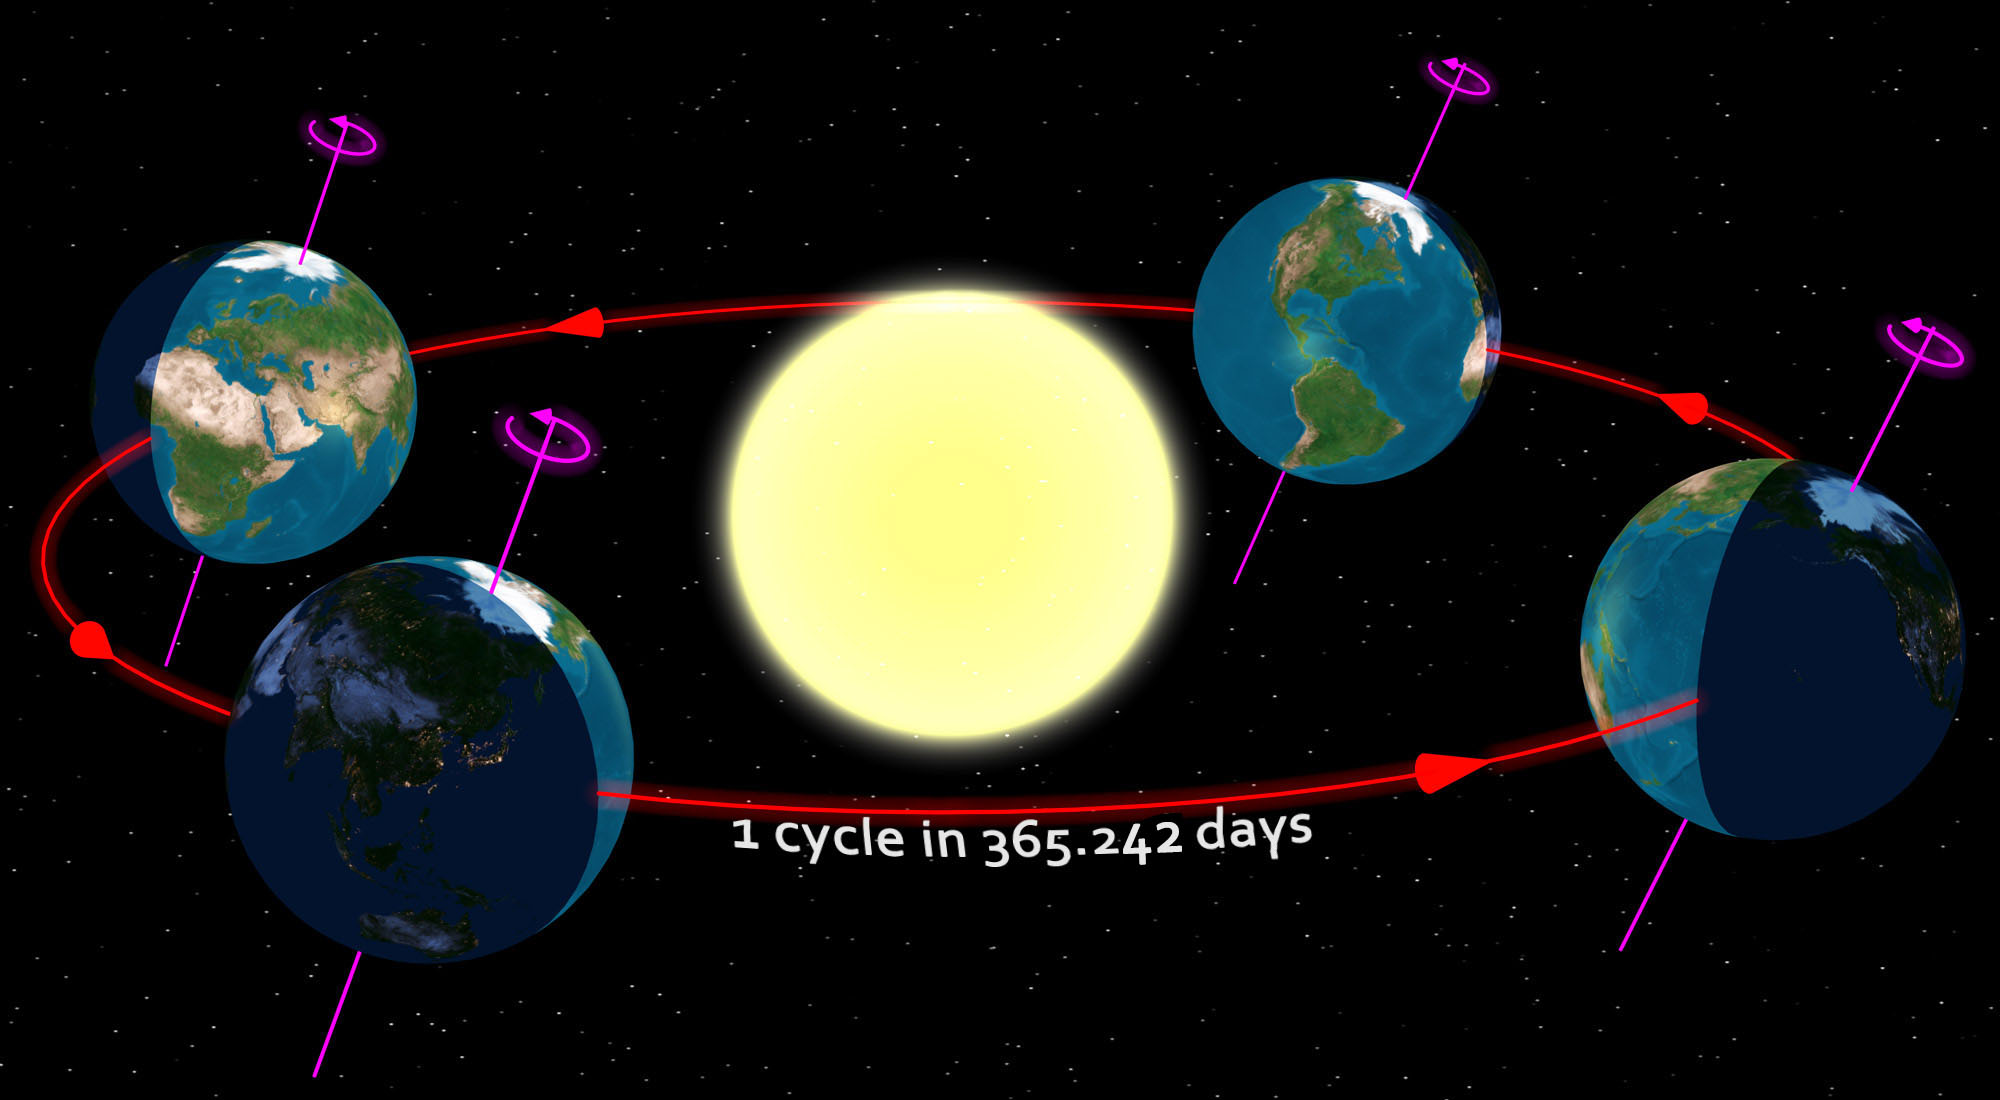 Earth revolution cycle around sun